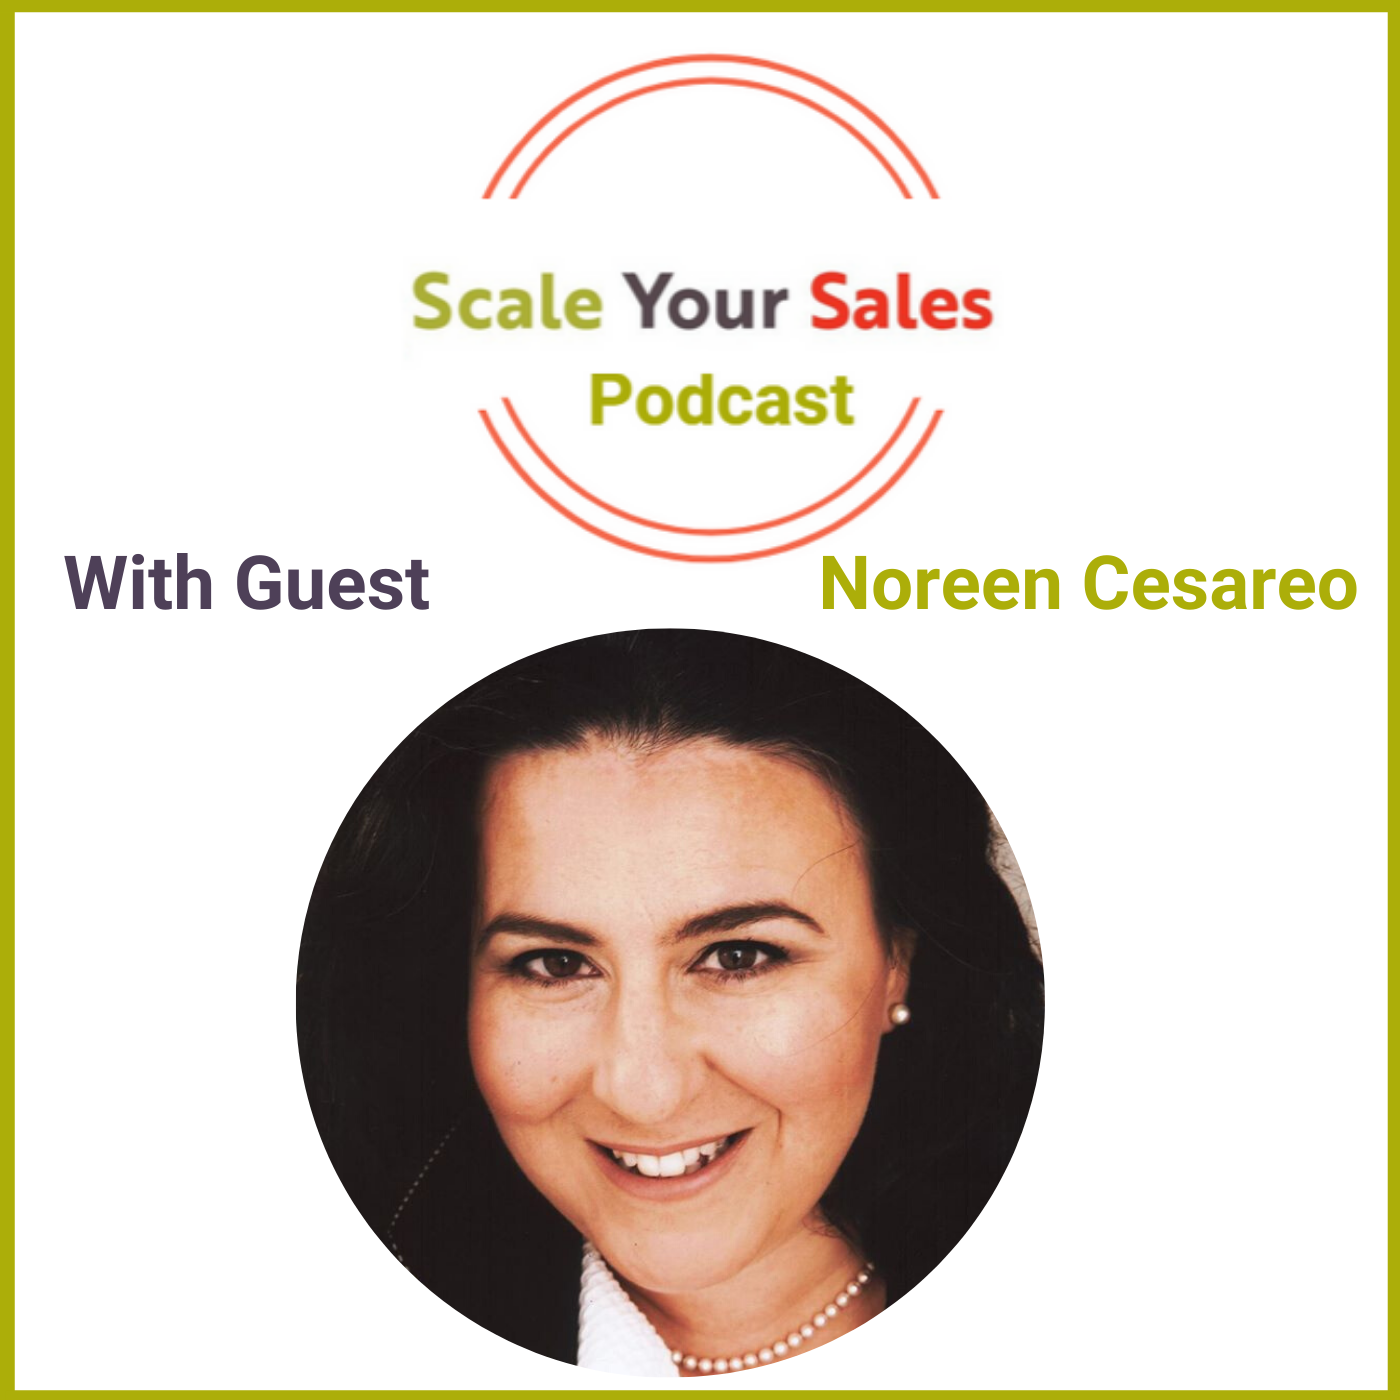 Episode 014 - Noreen Cesareo says We Are Being Trained on the B2C Side to Demanding Similar Service in B2B